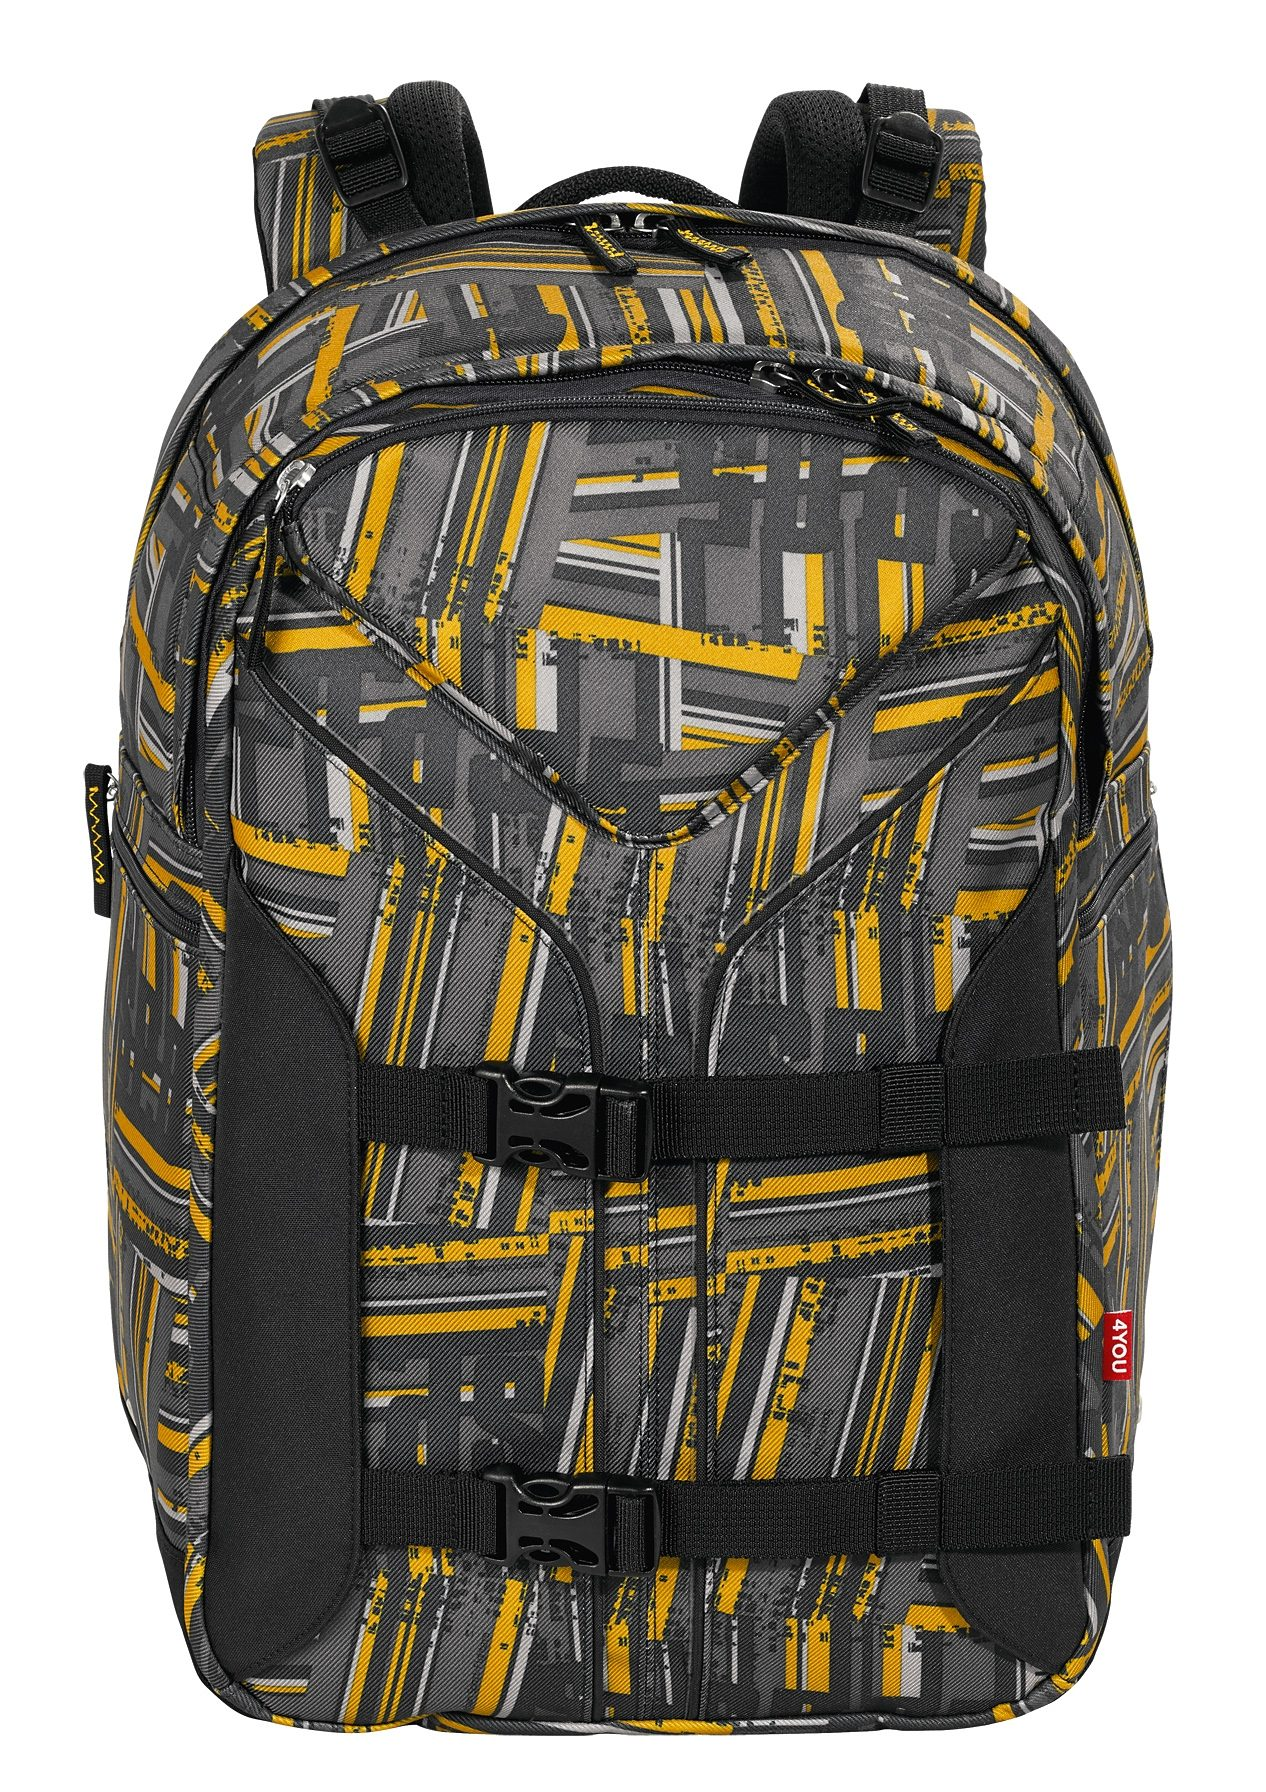 4YOU Rucksack mit Laptopfach, Stripes, »Boomerang Sport«